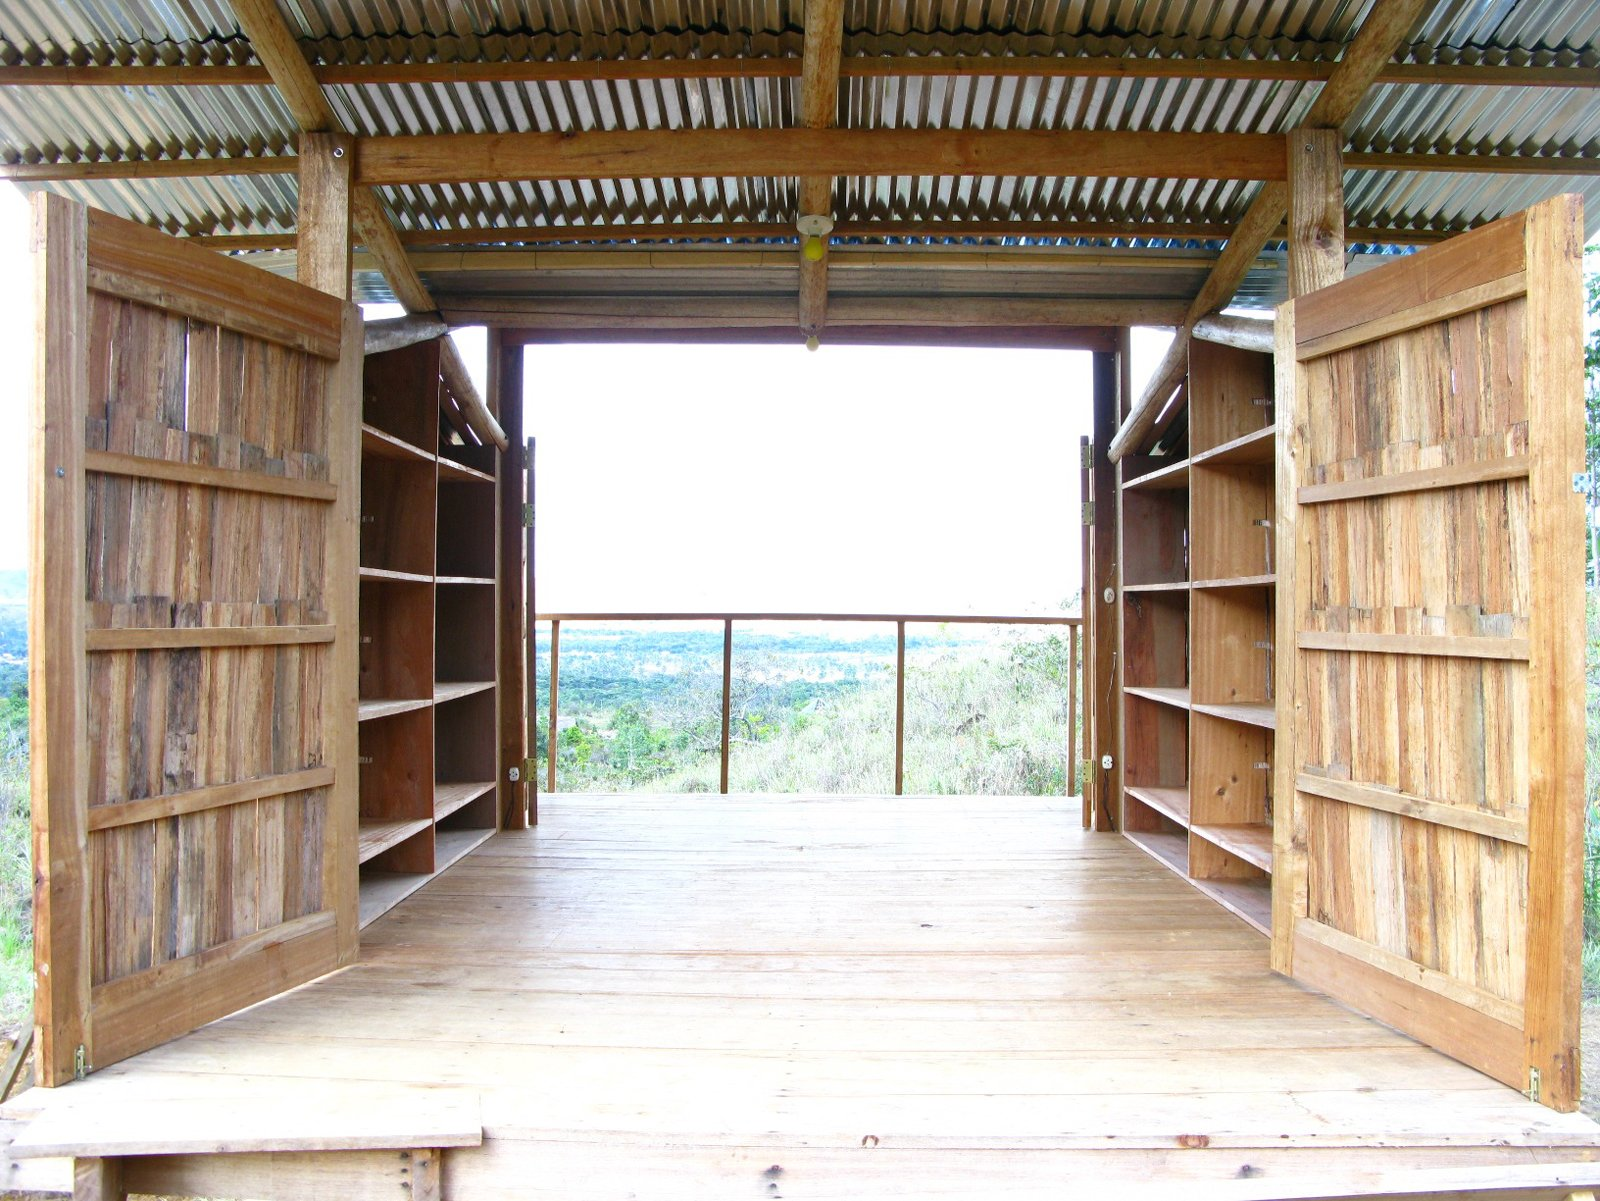 The interior of the cabana is relatively tight but with the sides open, the space feels breezy. Built-in shelving makes storage easier, leaving room for beds, chairs and tables.  Photo 4 of 13 in Venezuela's Eco Cabanas